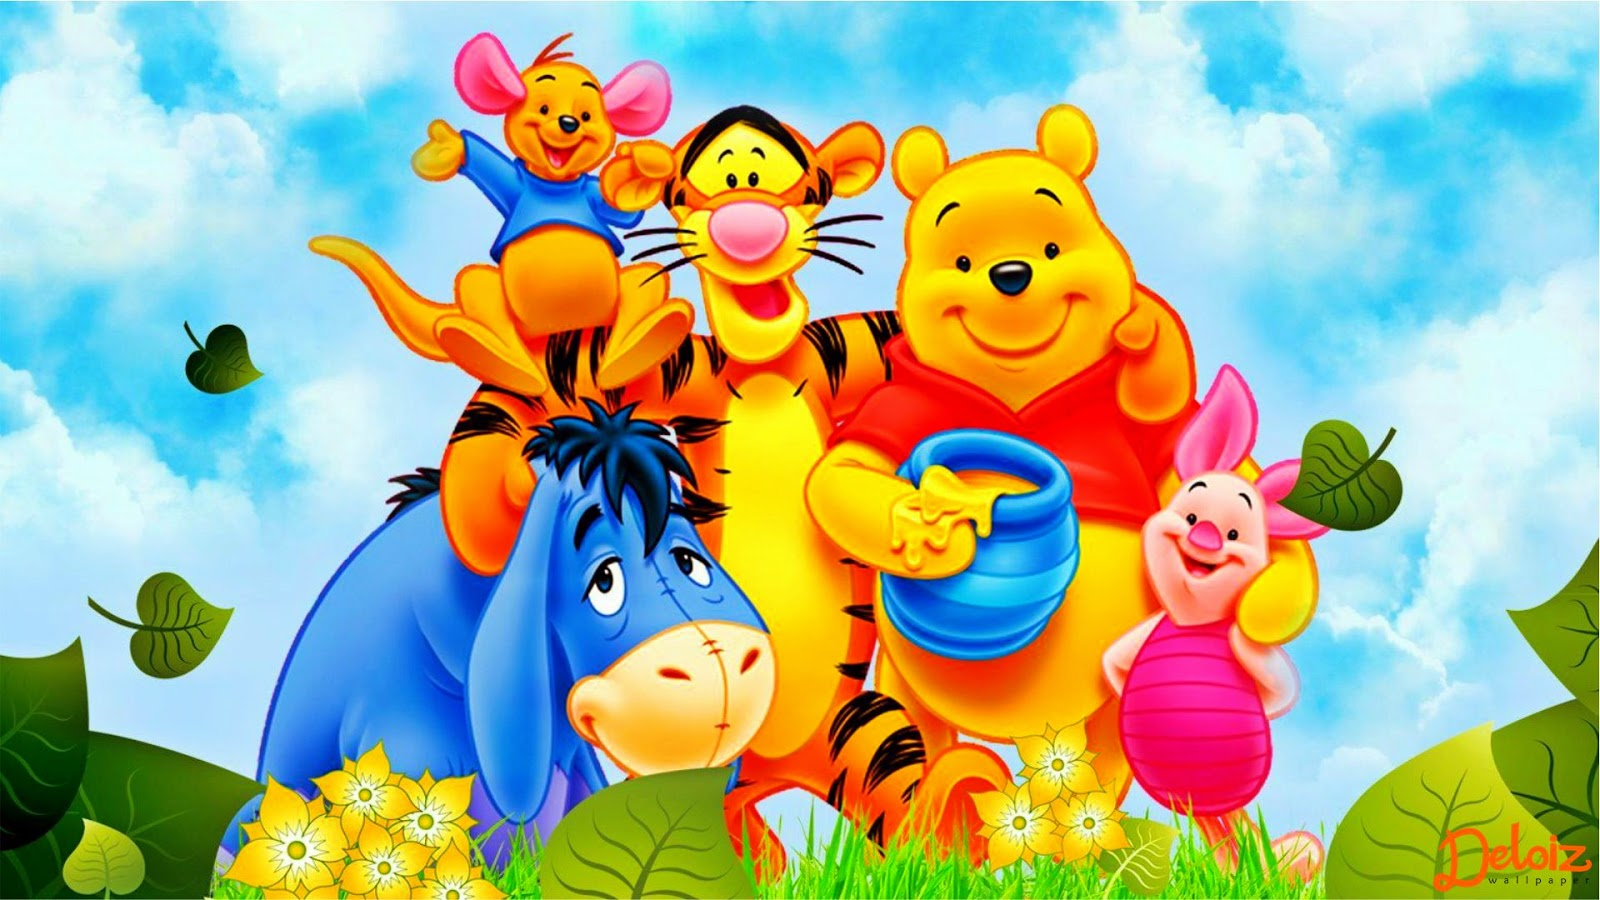 Wallpaper android iphone wallpaper winnie the pooh hd wallpaper winnie the pooh hd voltagebd